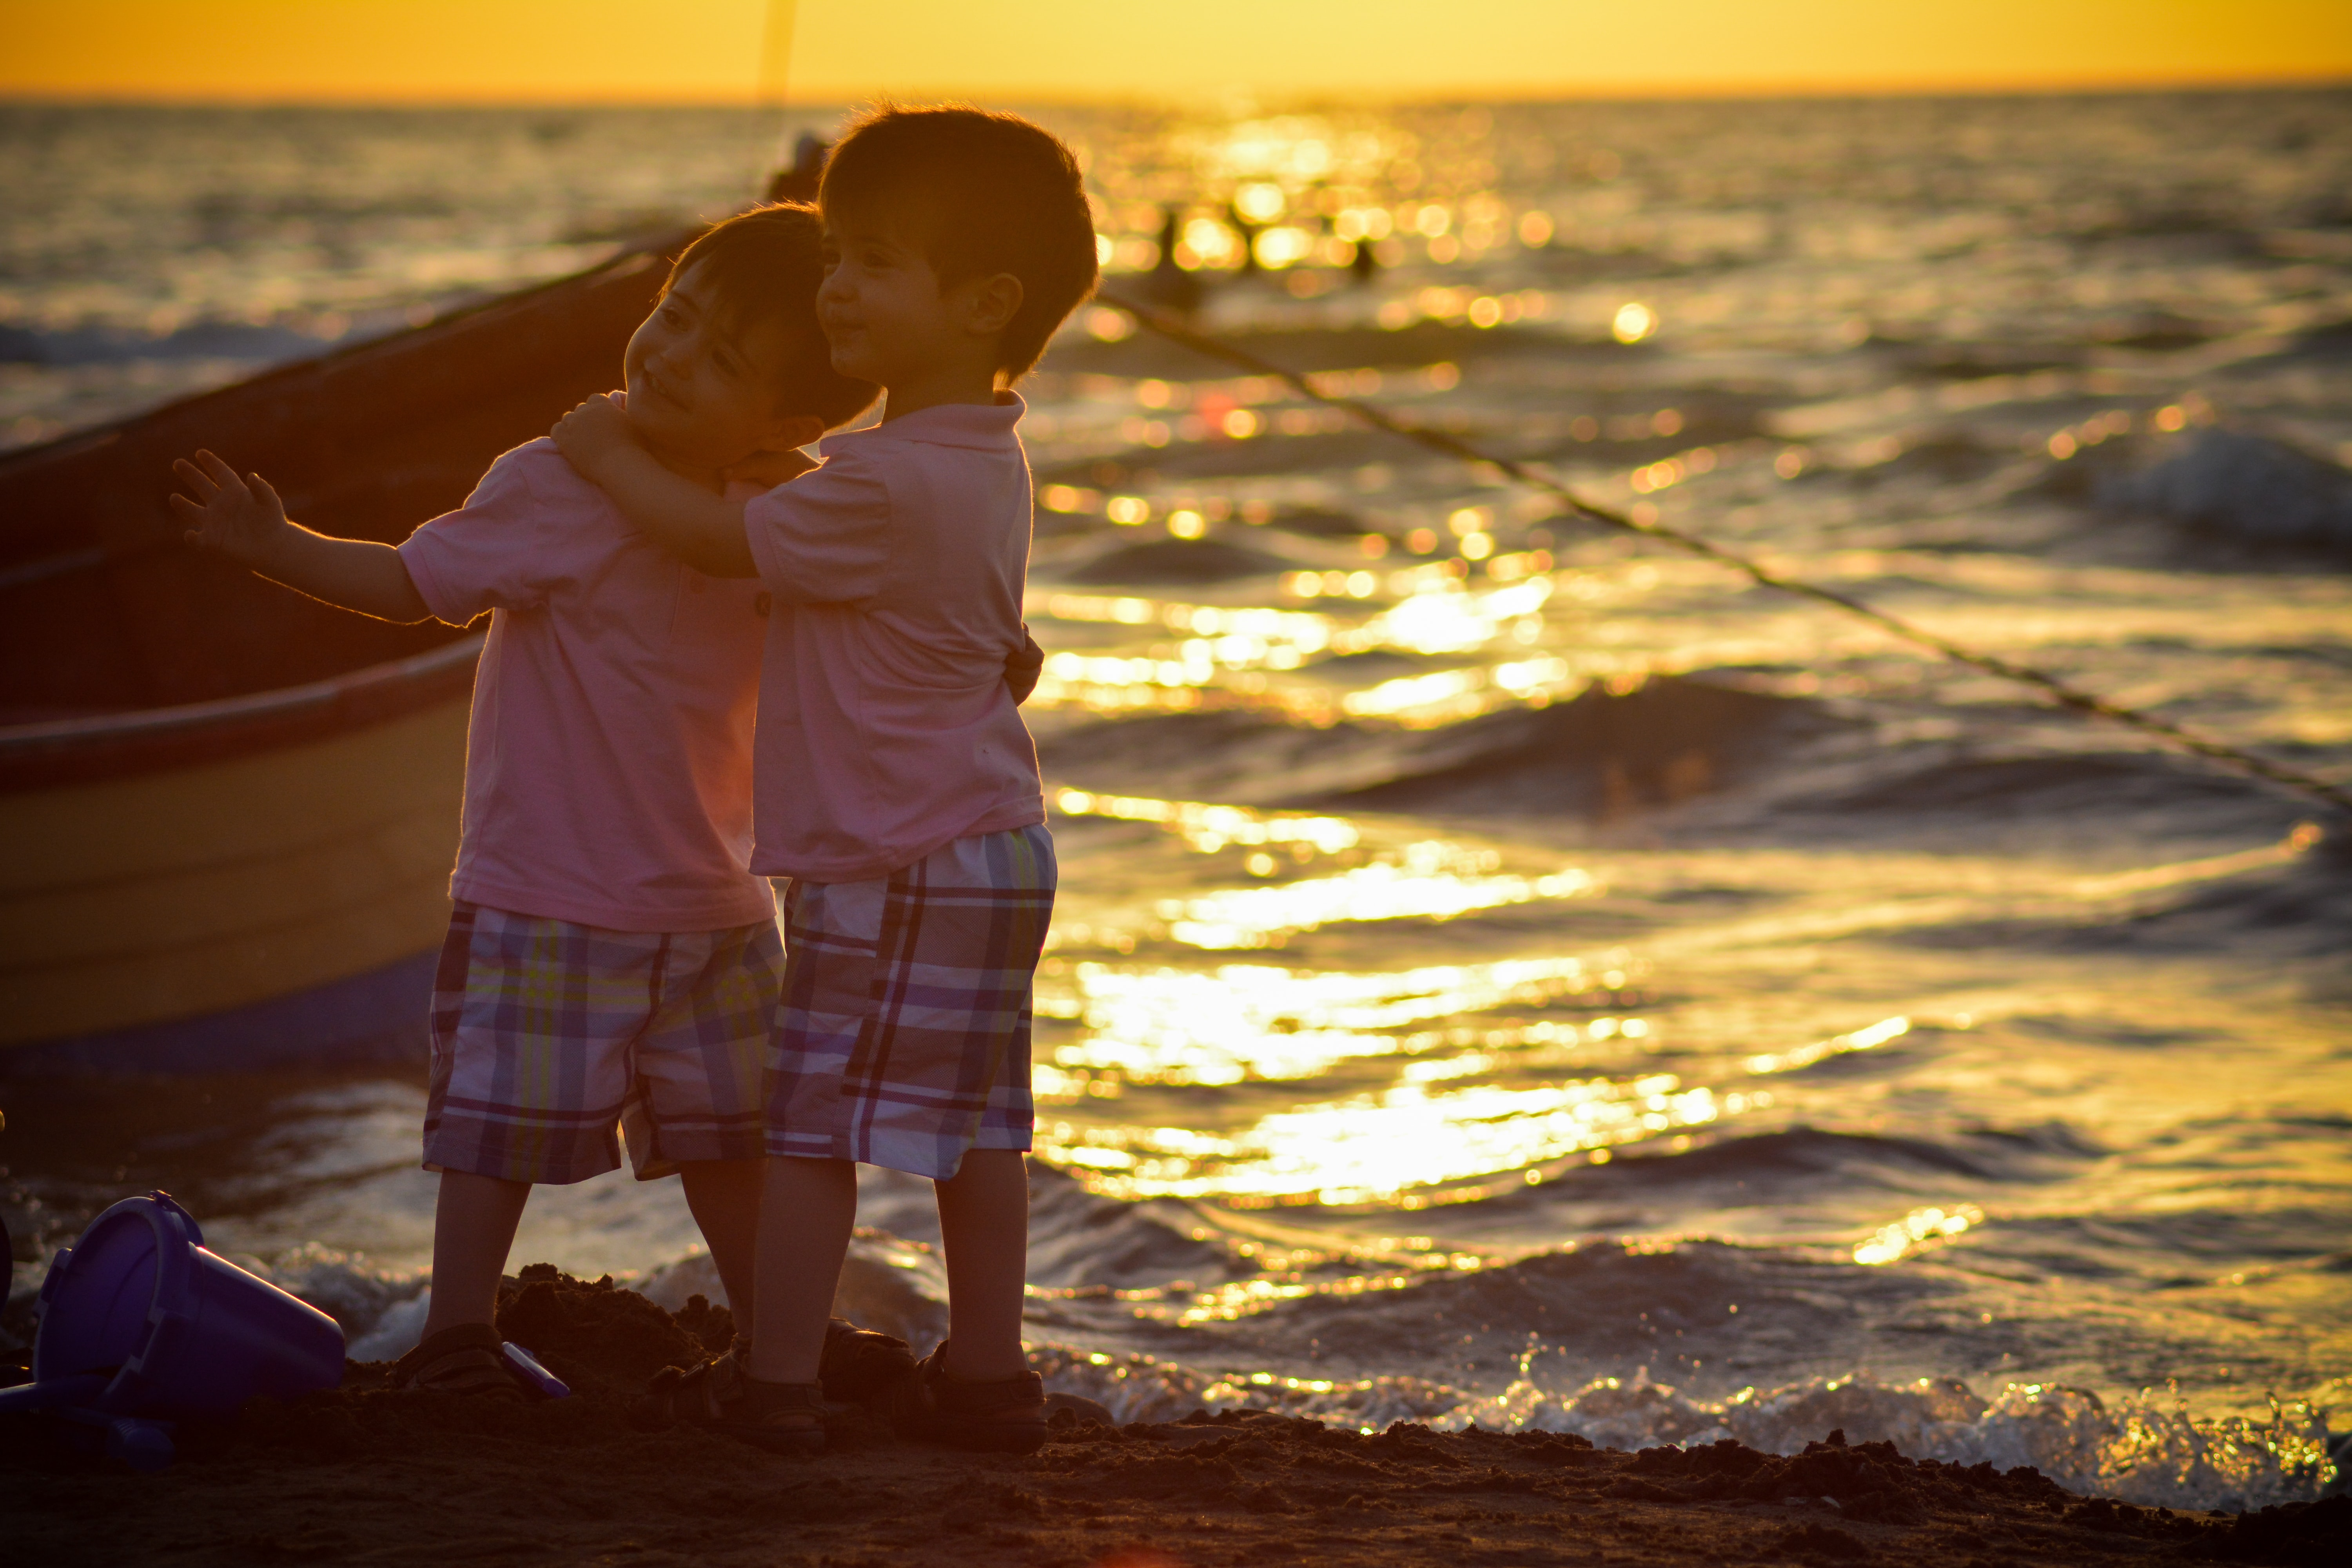 two children by the beach